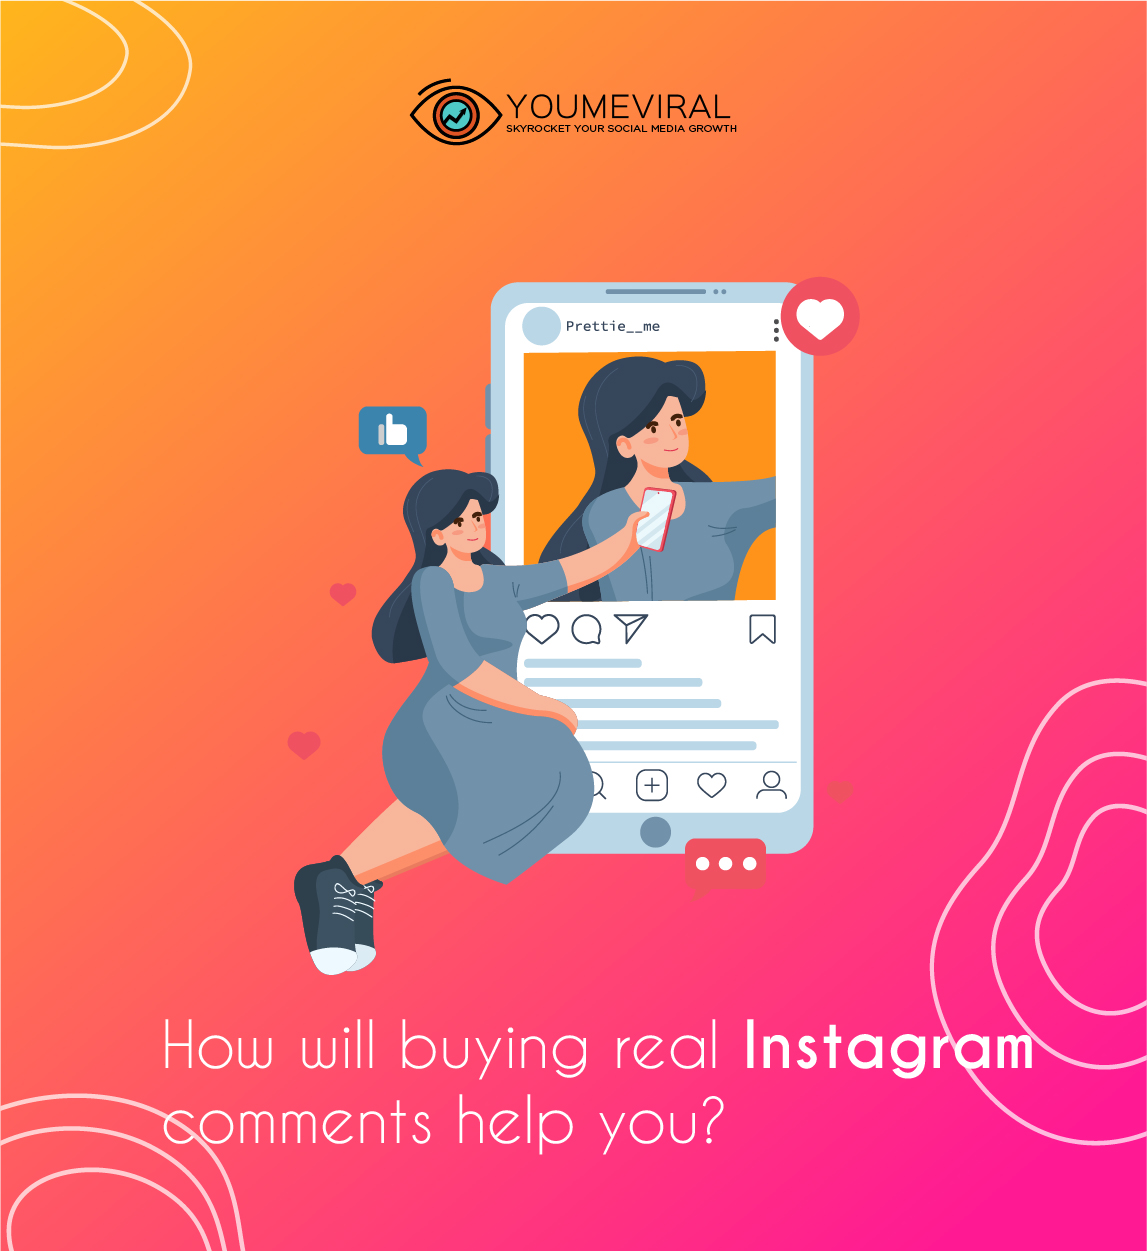 How will buying real Instagram comments help you?